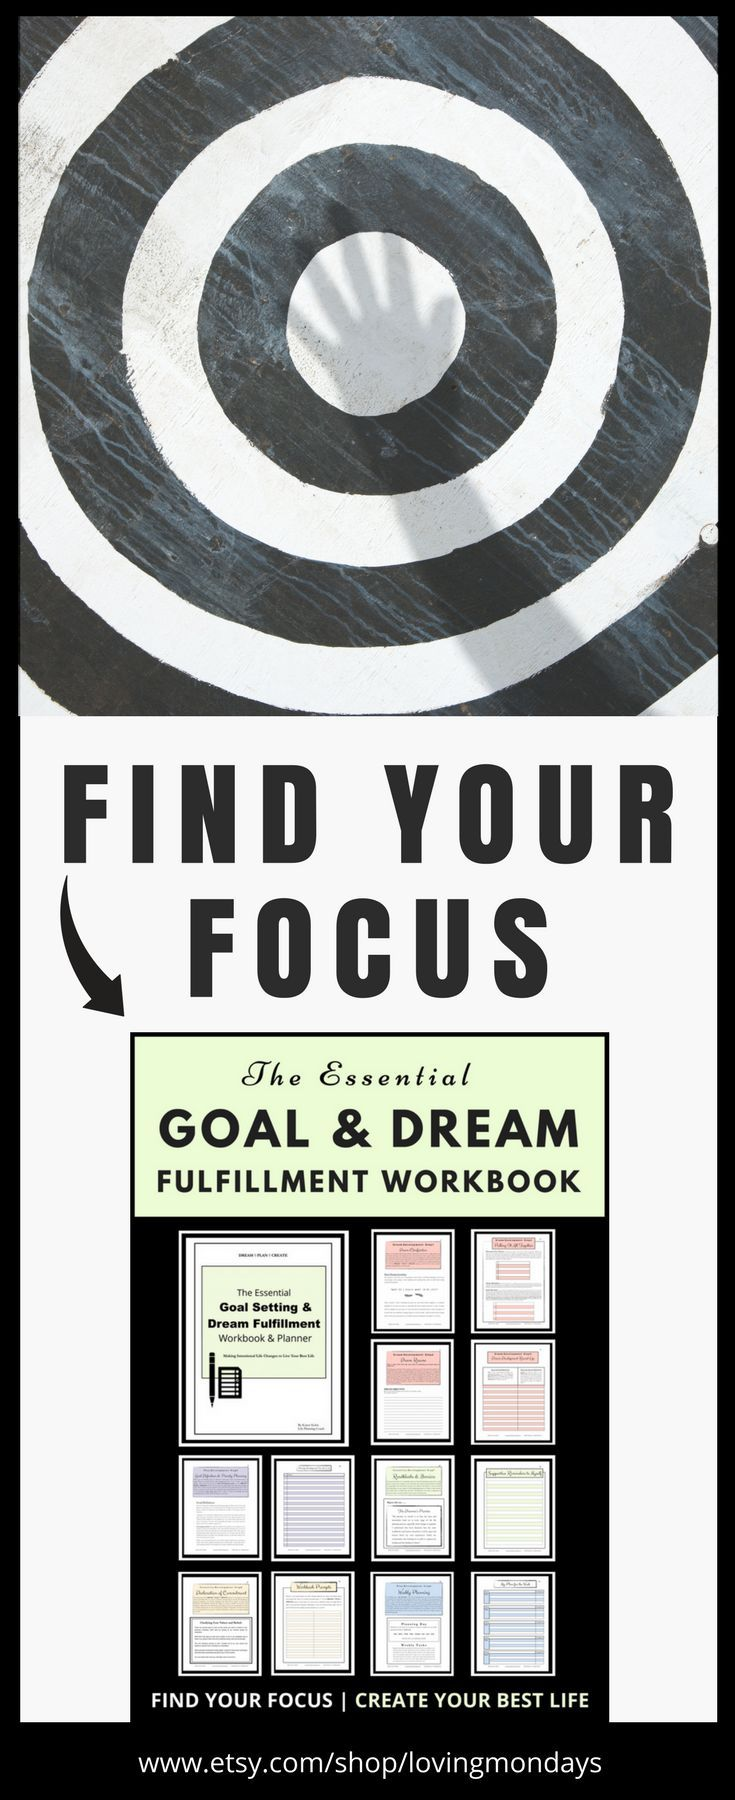 Workbooks goals workbook : This workbook is more than just a planner to list goals, it's a ...